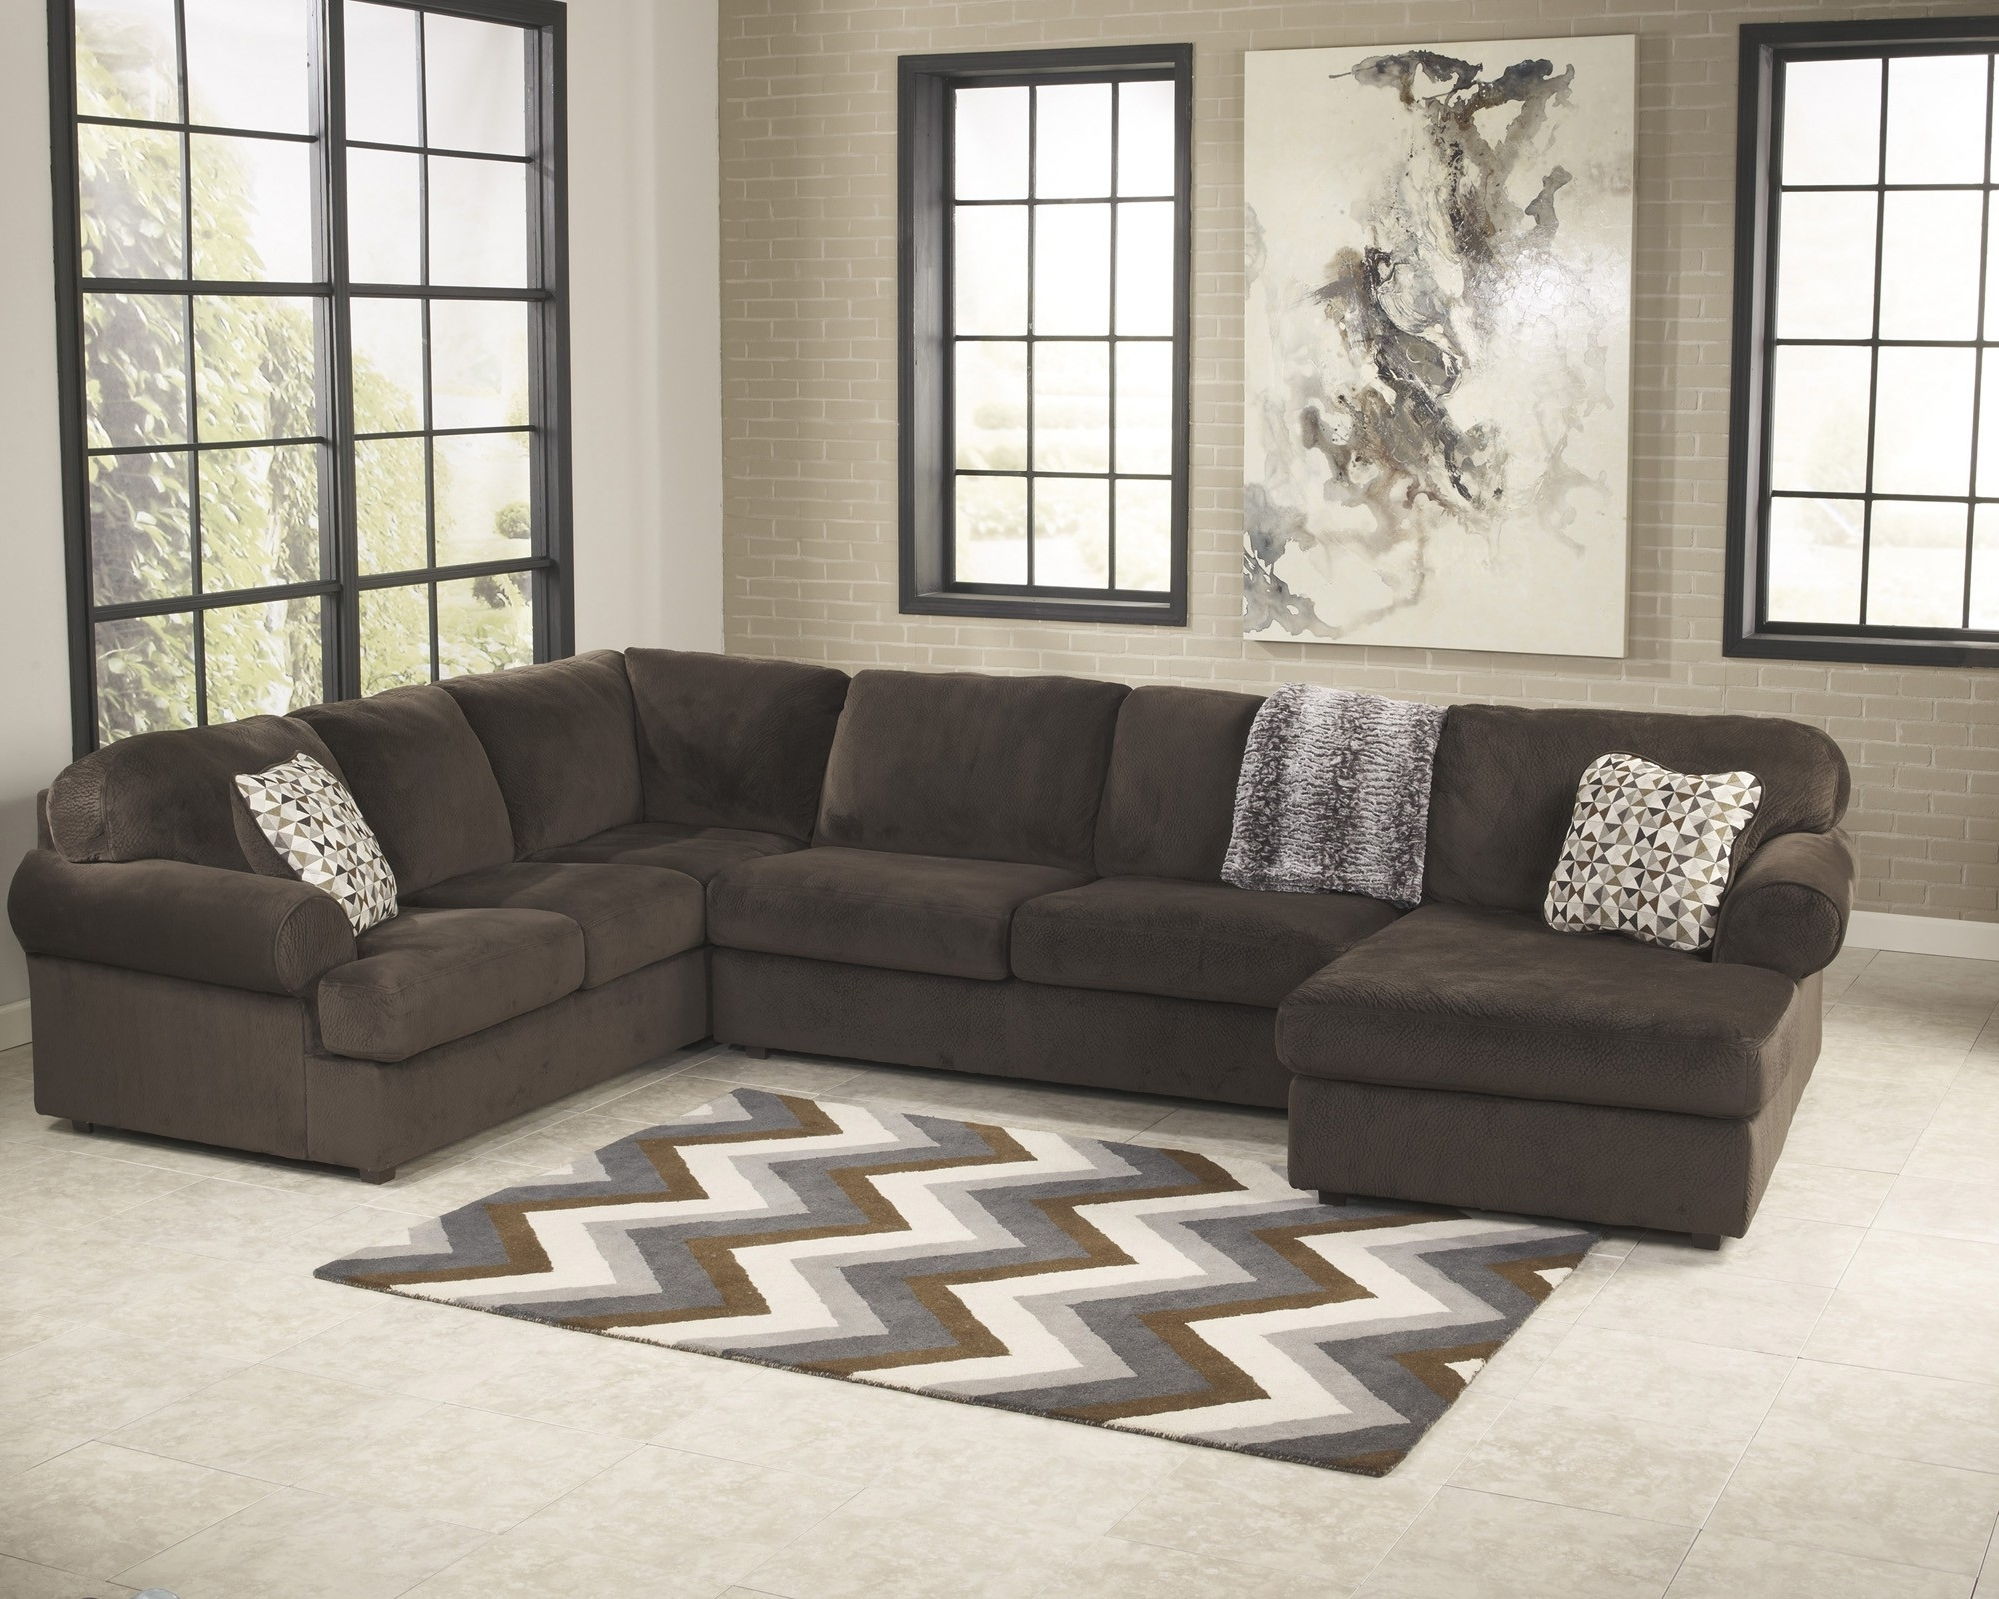 Trendy Greenville Sc Sectional Sofas Intended For Chairs : Jessa Place Chocolate Piece Sectional Sofa For Sofas Sale (View 12 of 15)